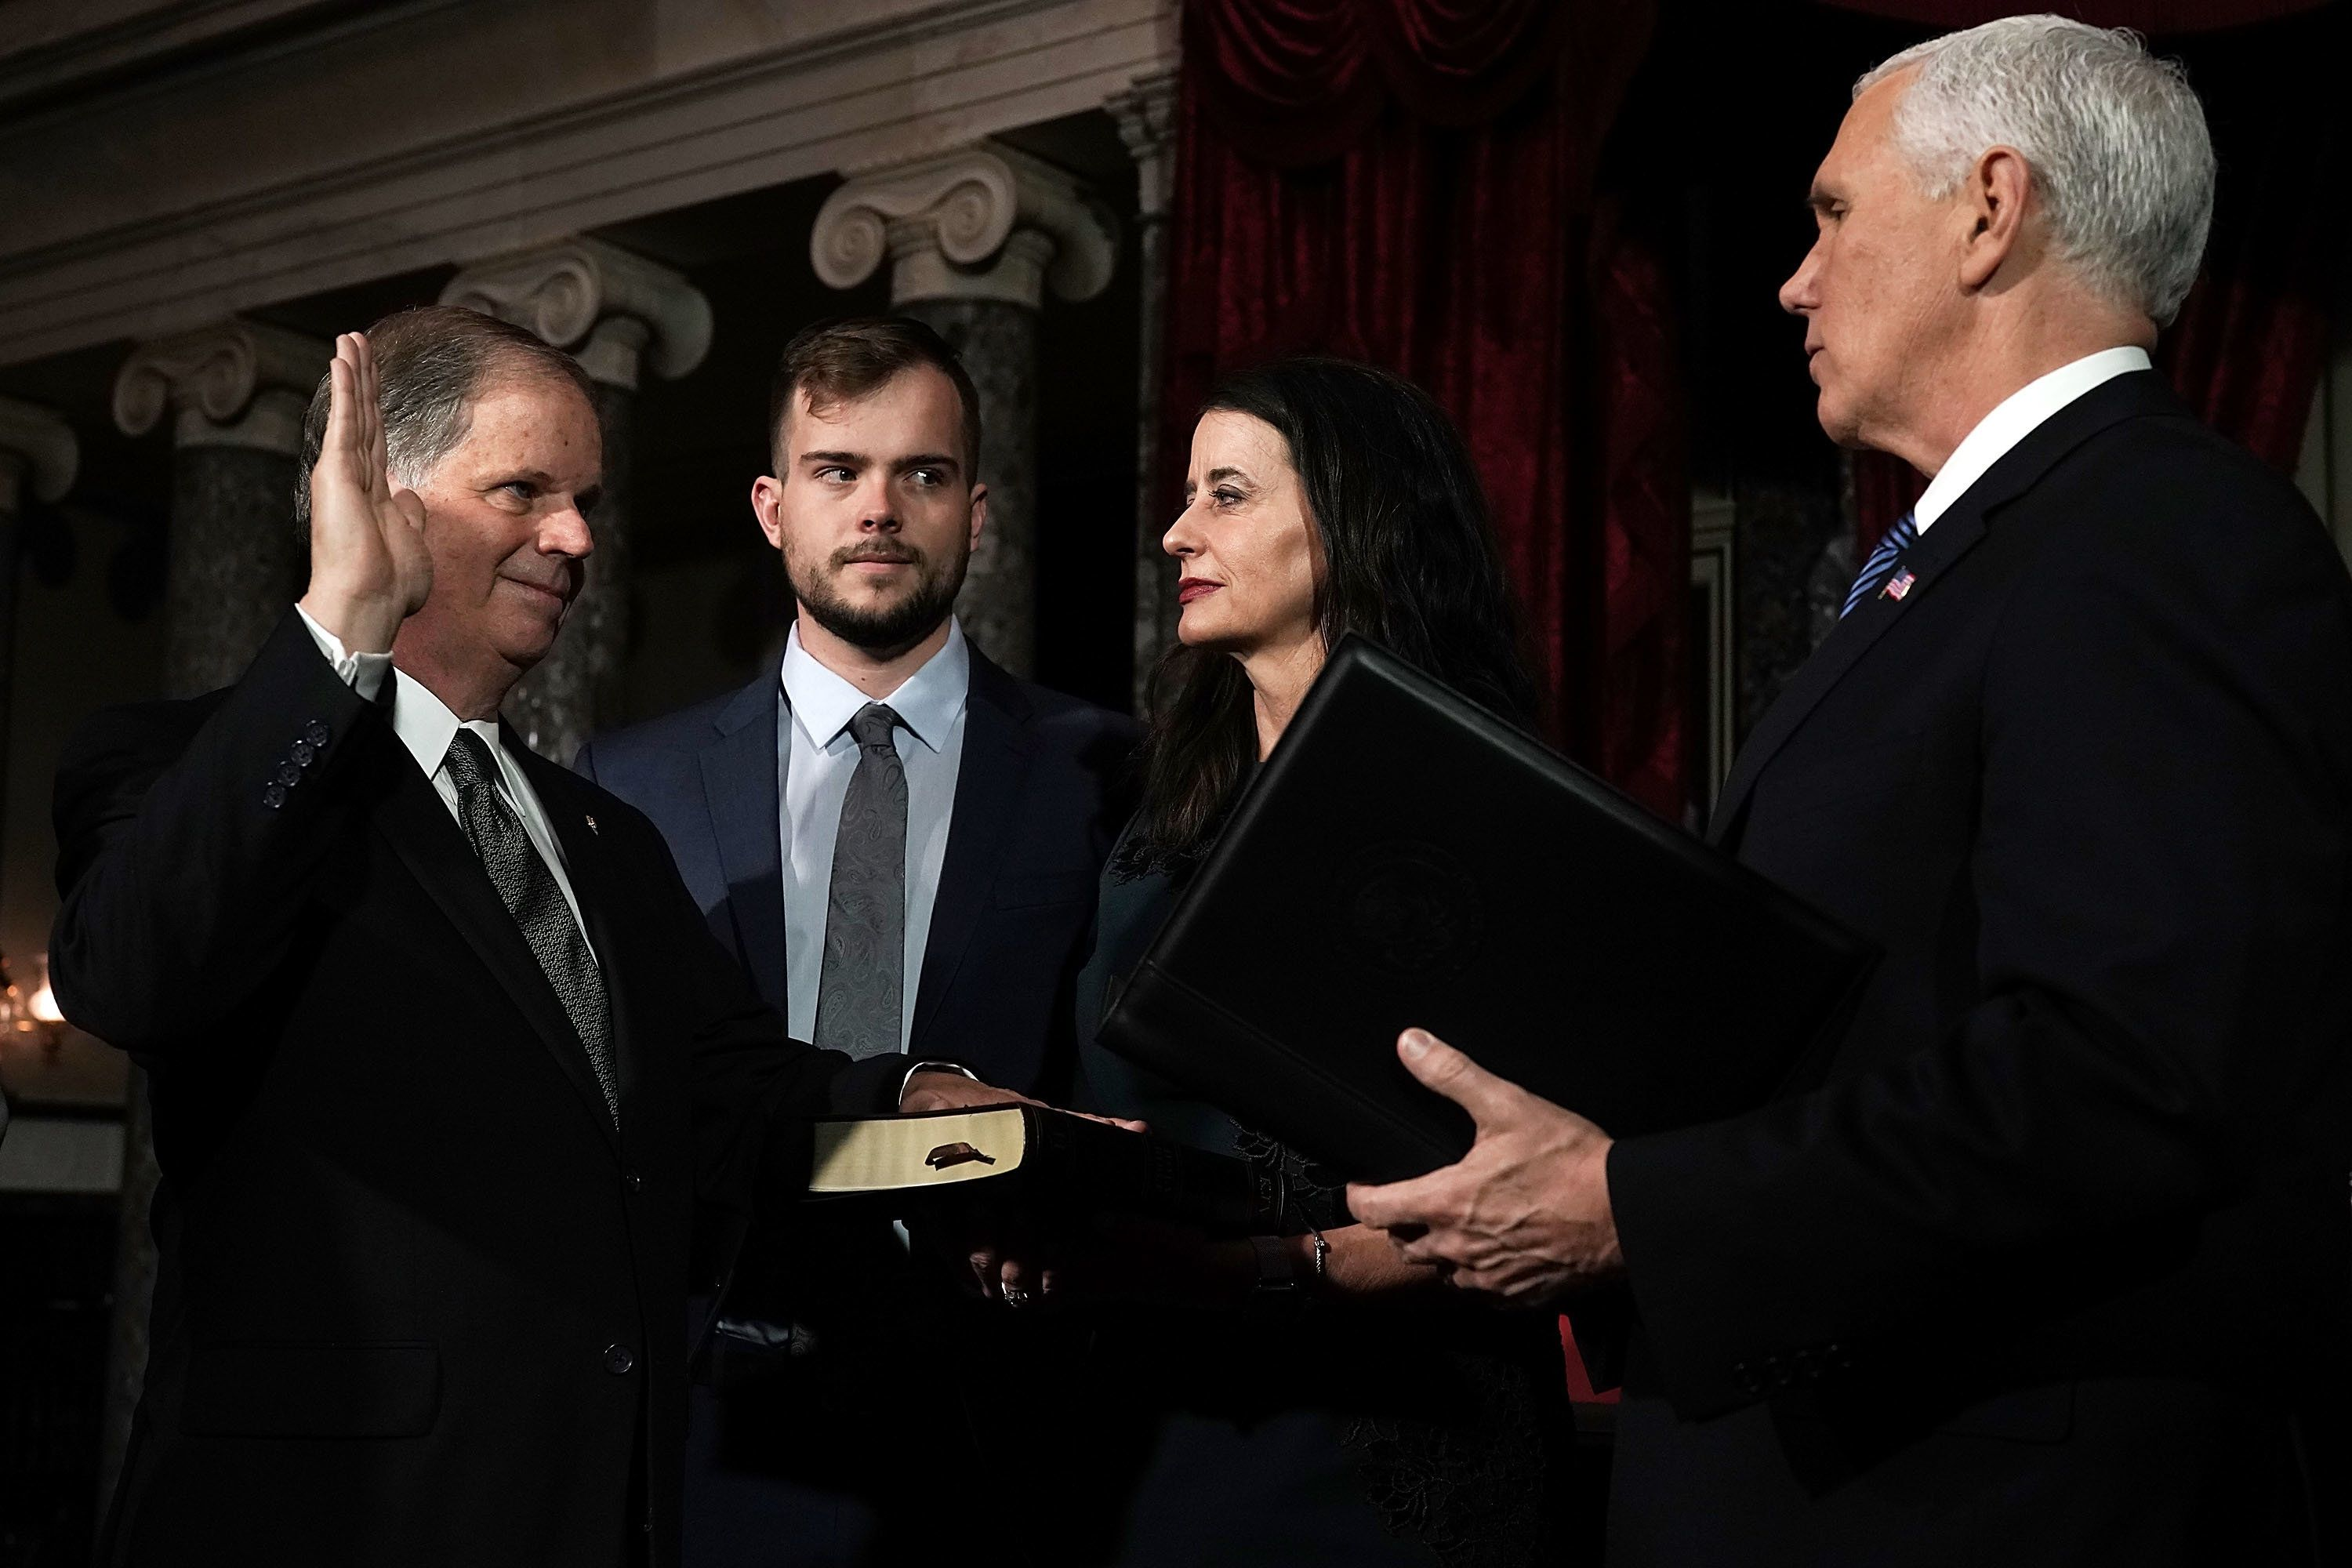 Doug Jones' Son Gives Mike Pence The Side-Eye Of The Century